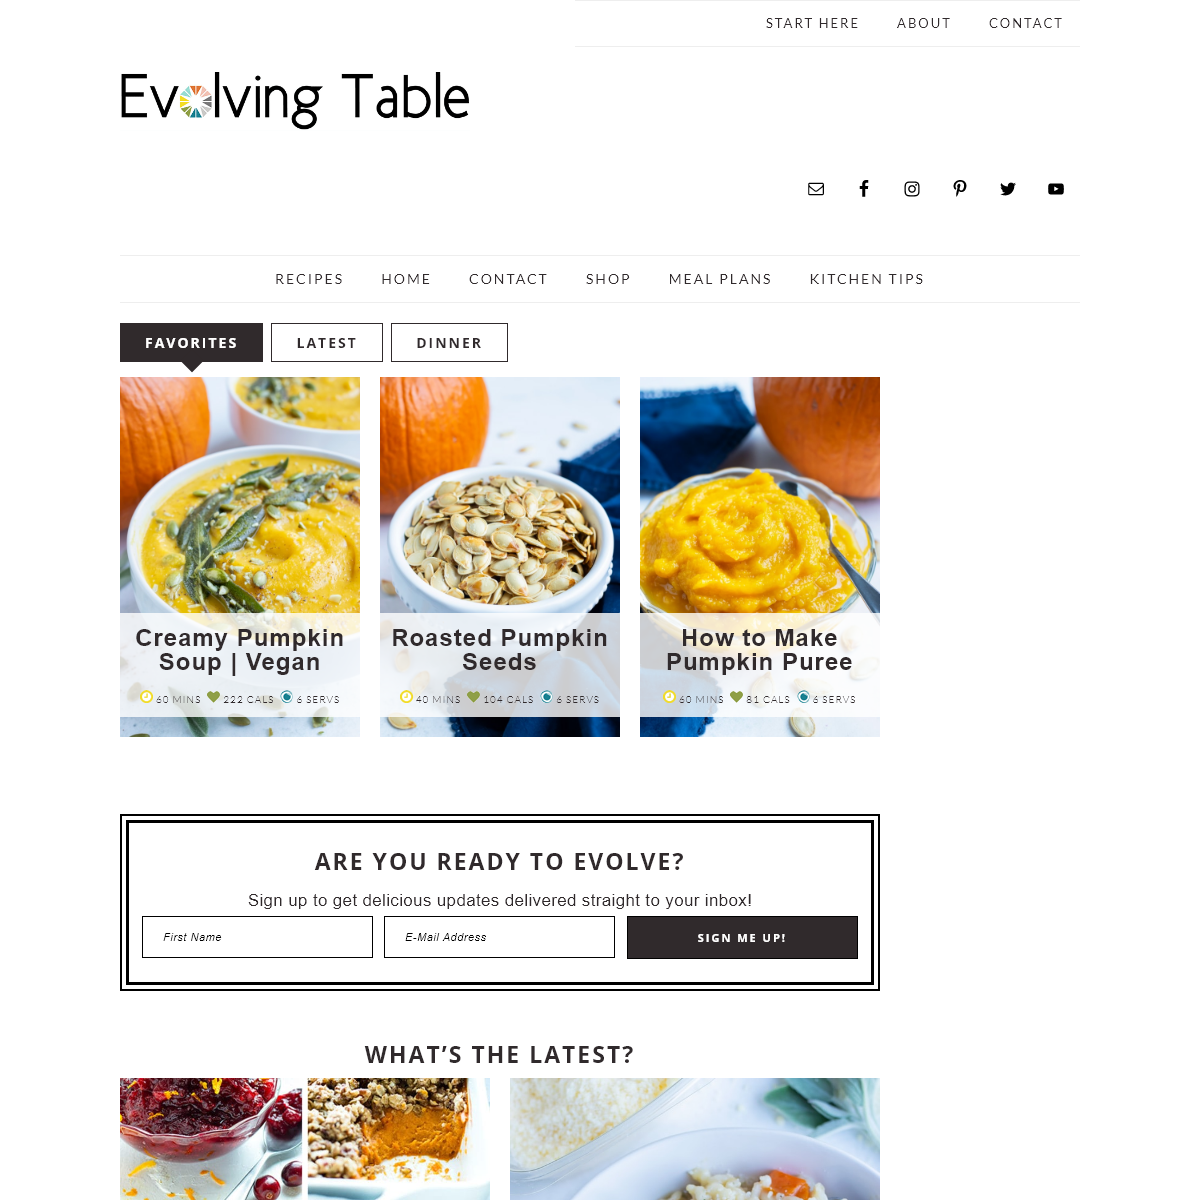 Evolving Table - Healthy, Simple, Family-Friendly Recipes